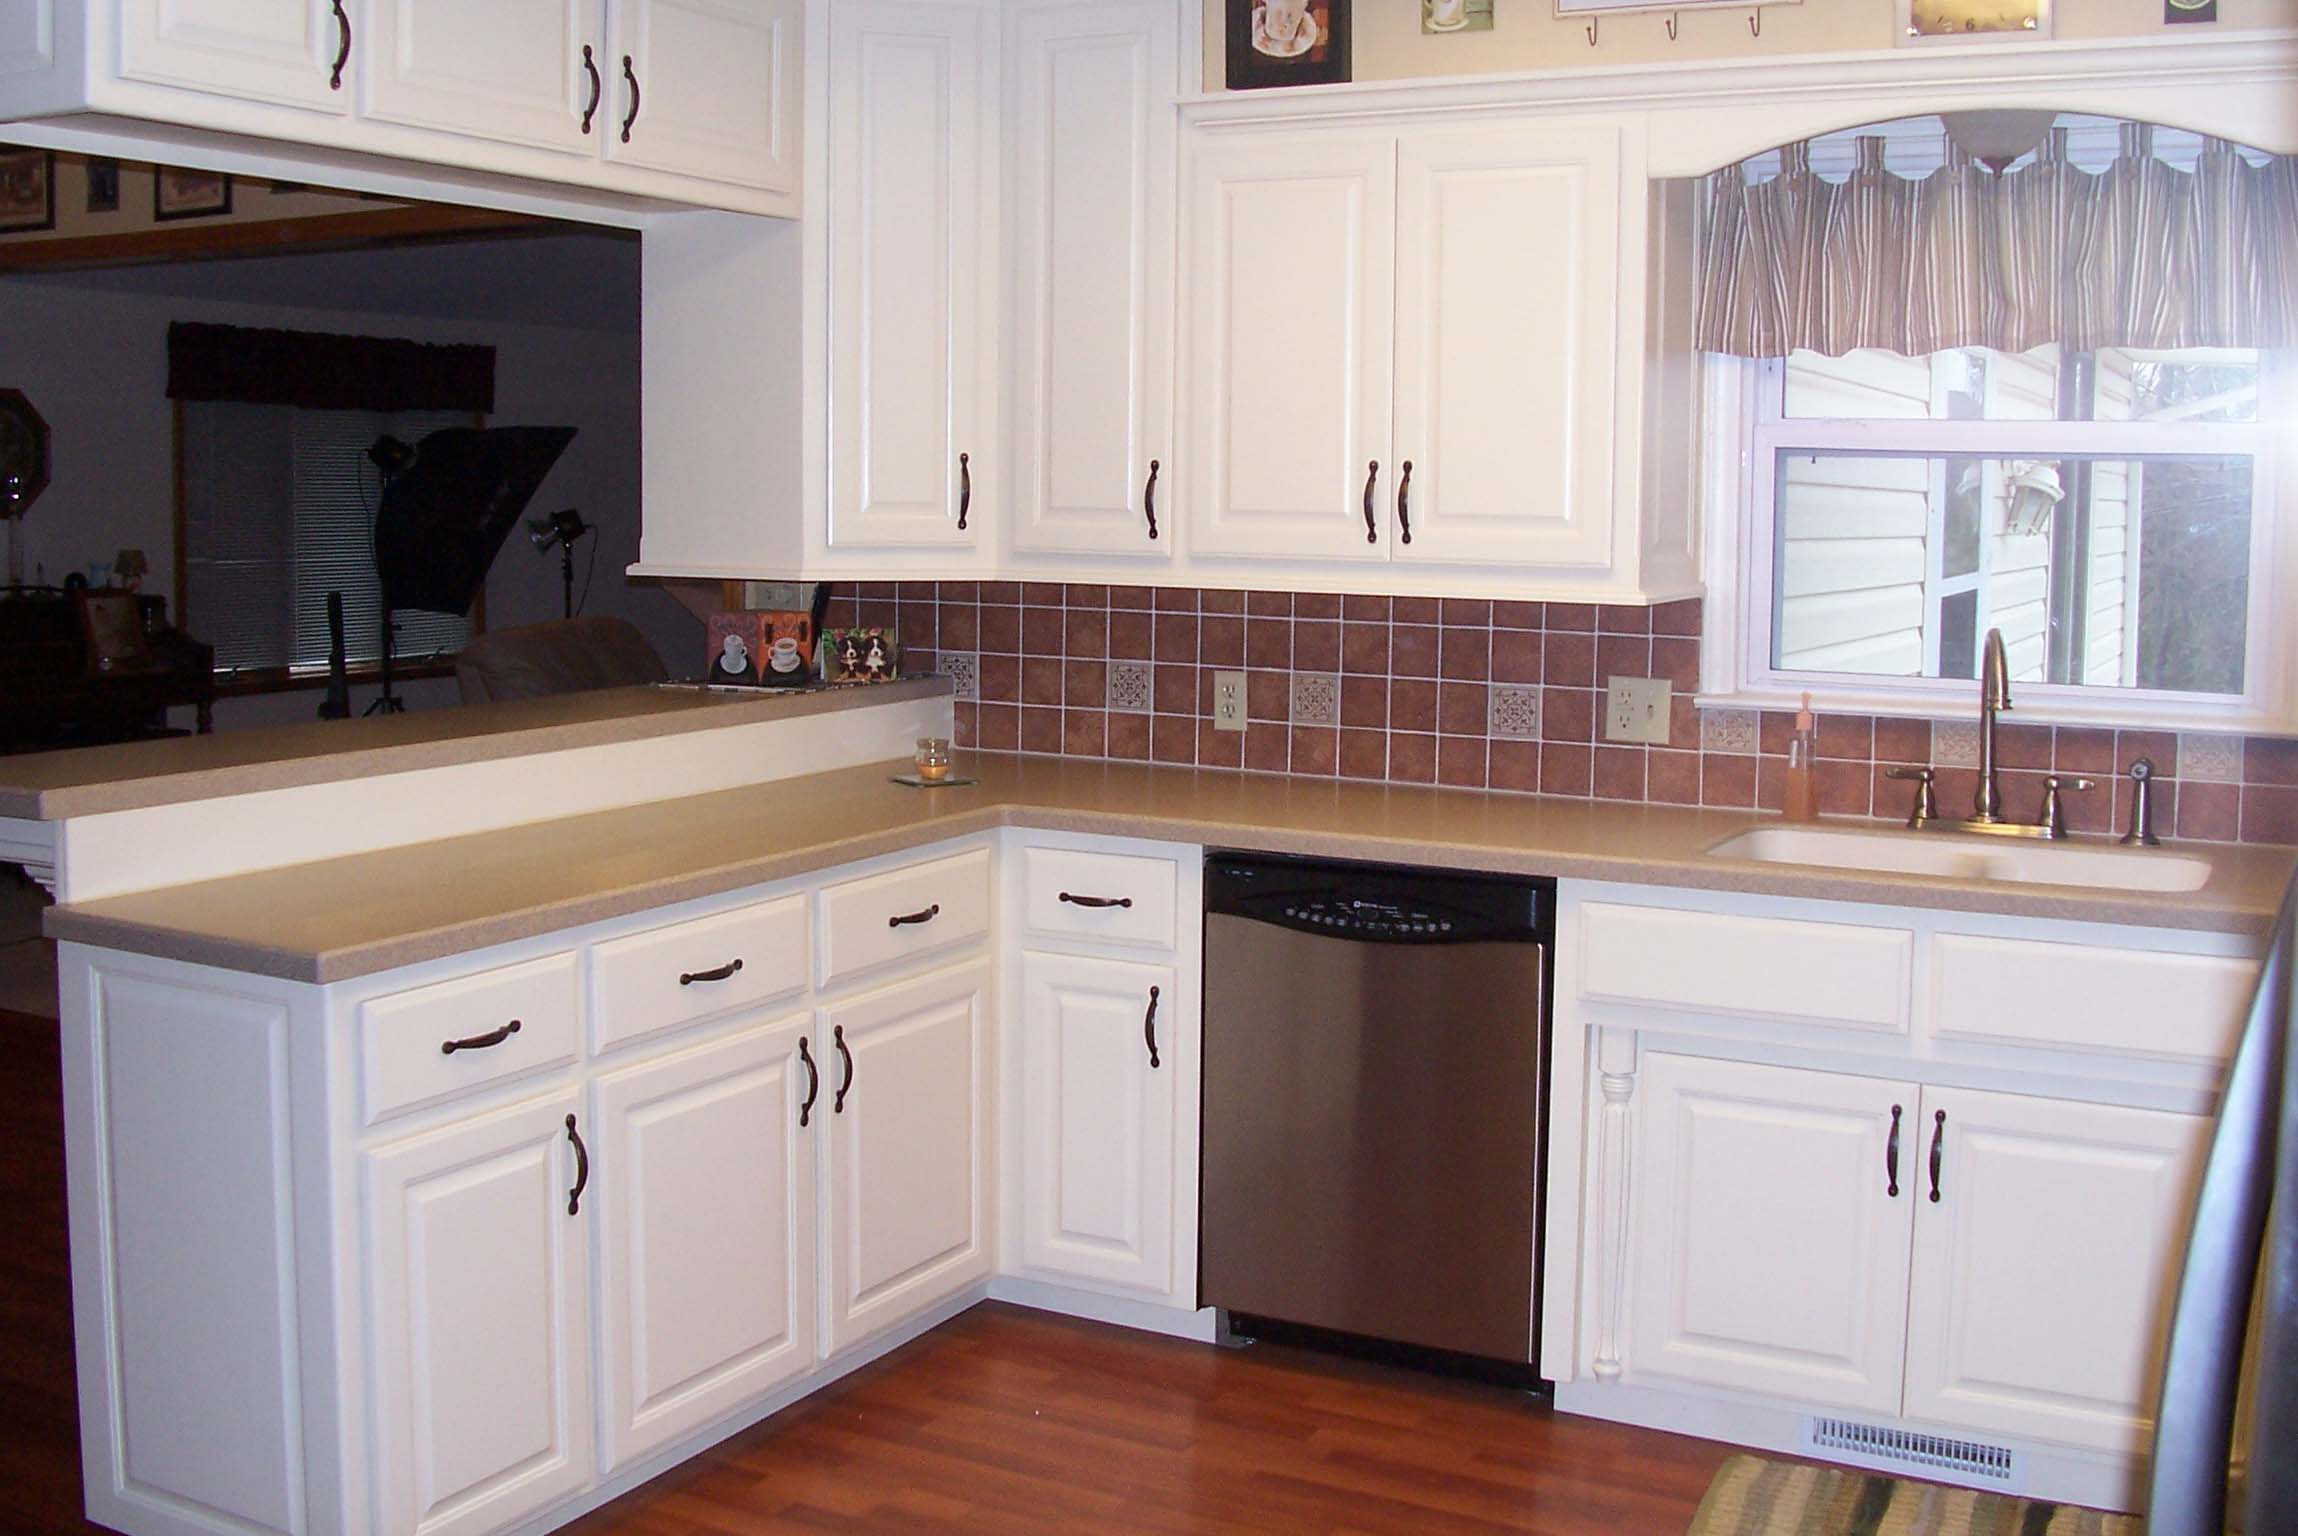 decorating ideas for small kitchens photo - 1